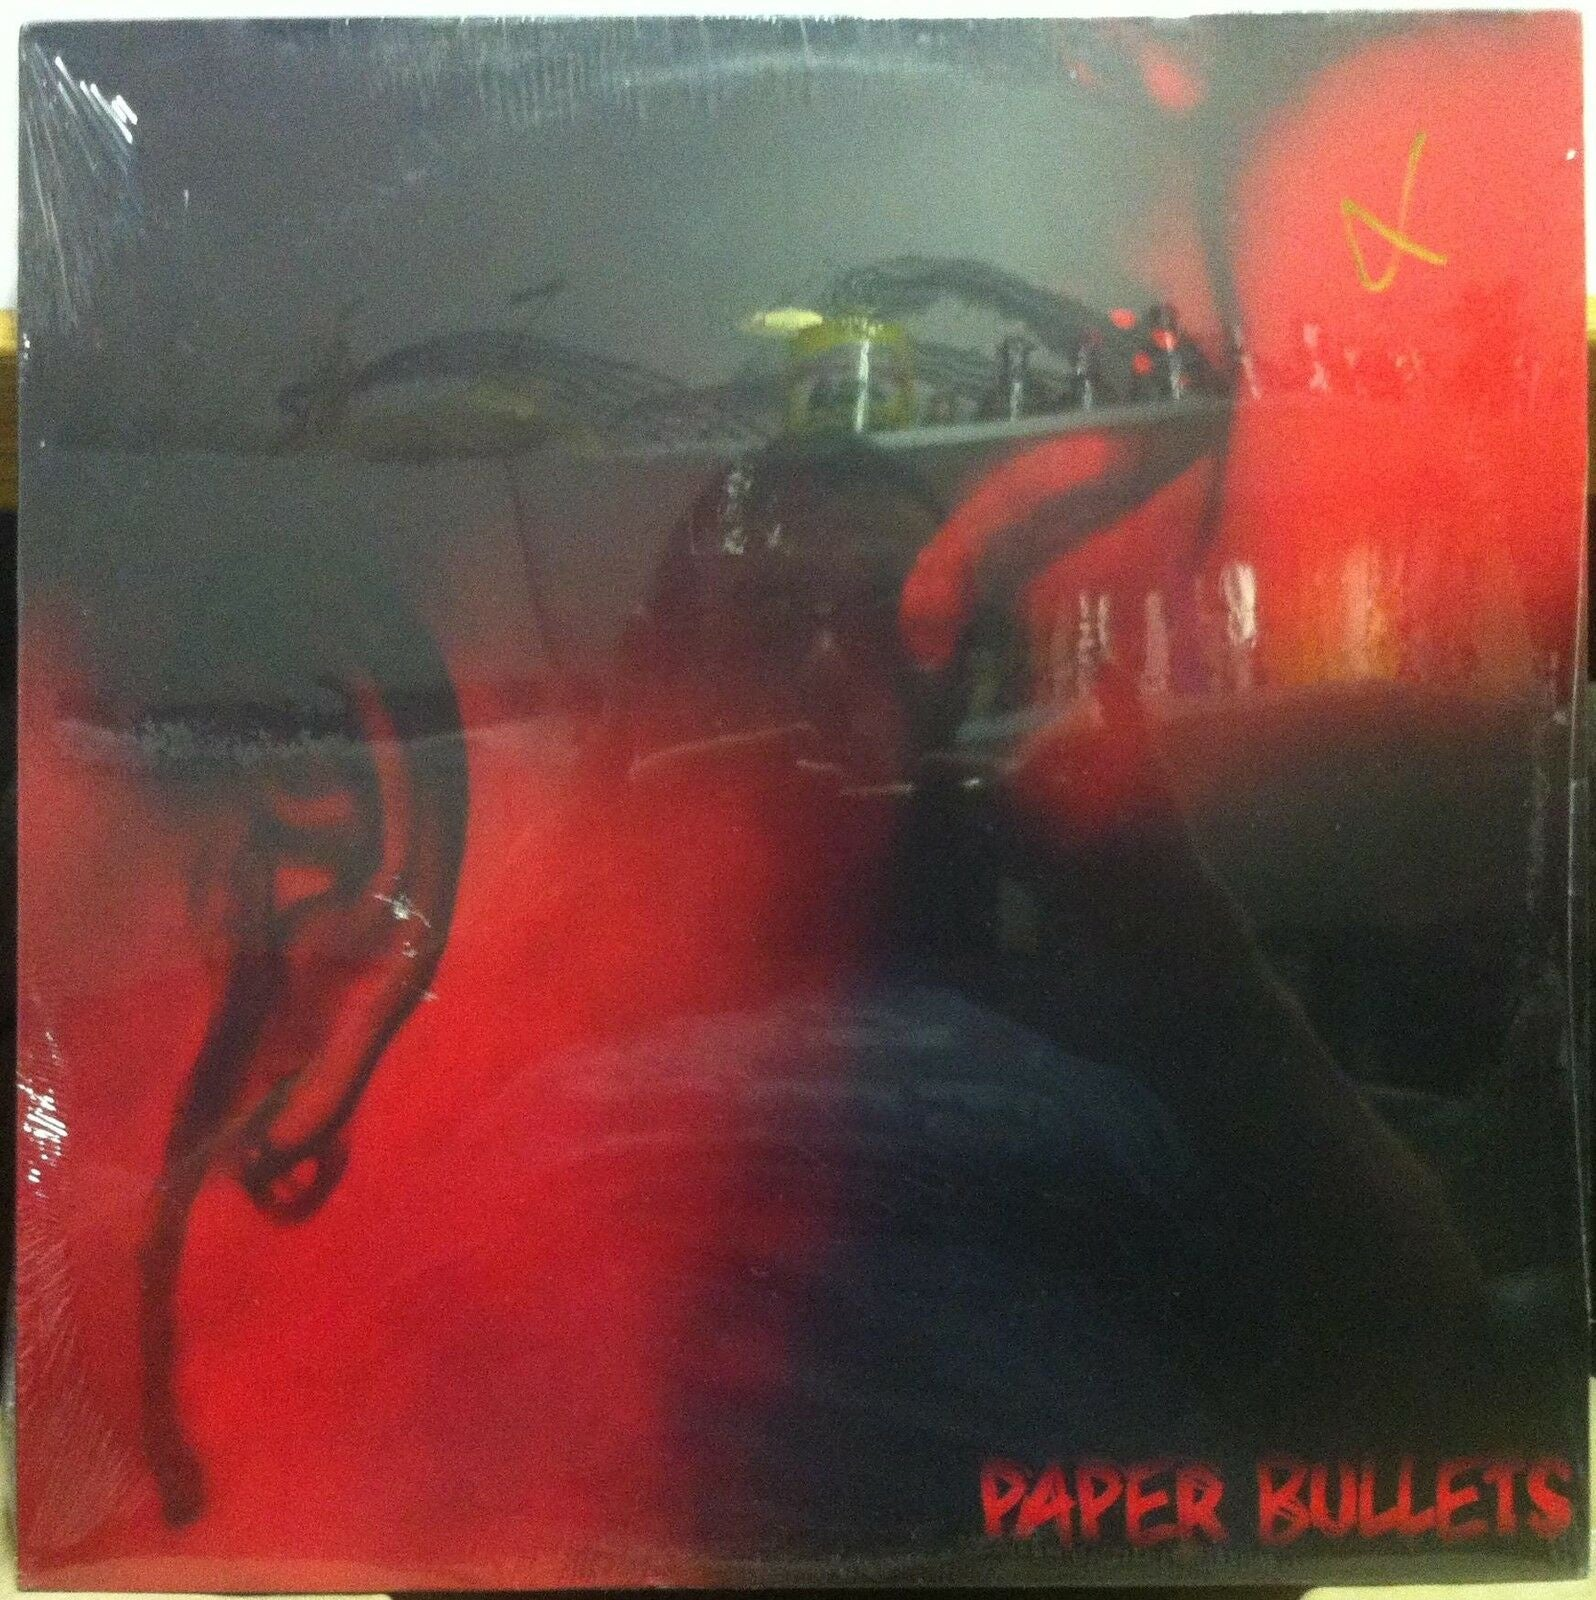 Paper Bullets ‎– Paper Bullets - New Lp Record 2005 Ear Flaw USA Unknown Color Vinyl - Chicago Punk